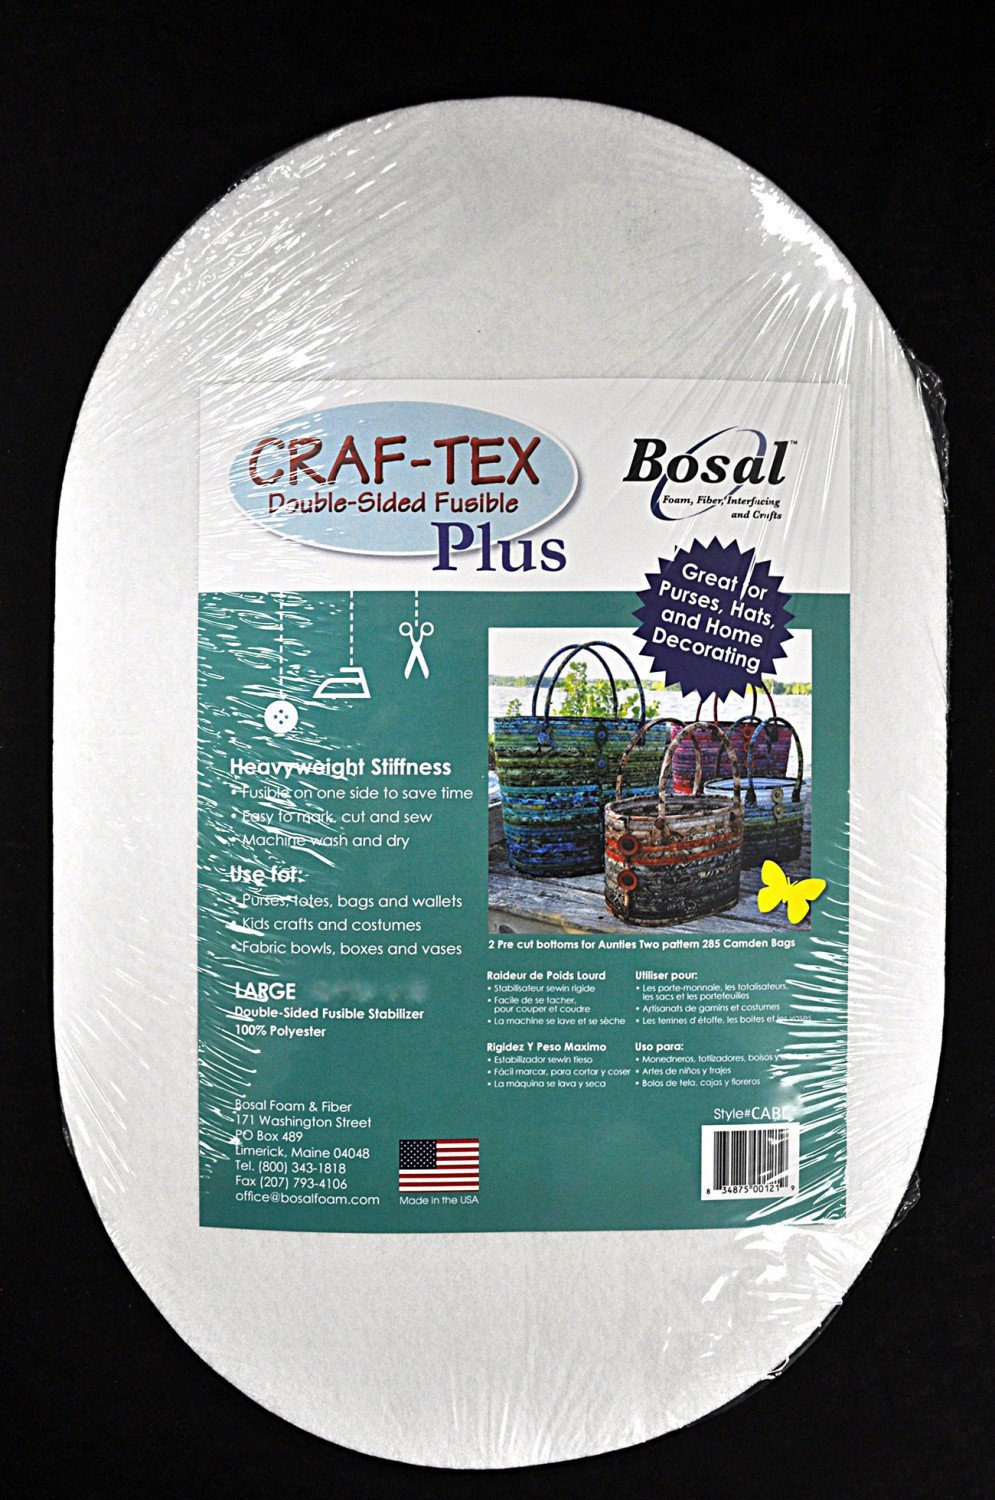 Craf-Tex Camden Bag Large Double Sided Fusible